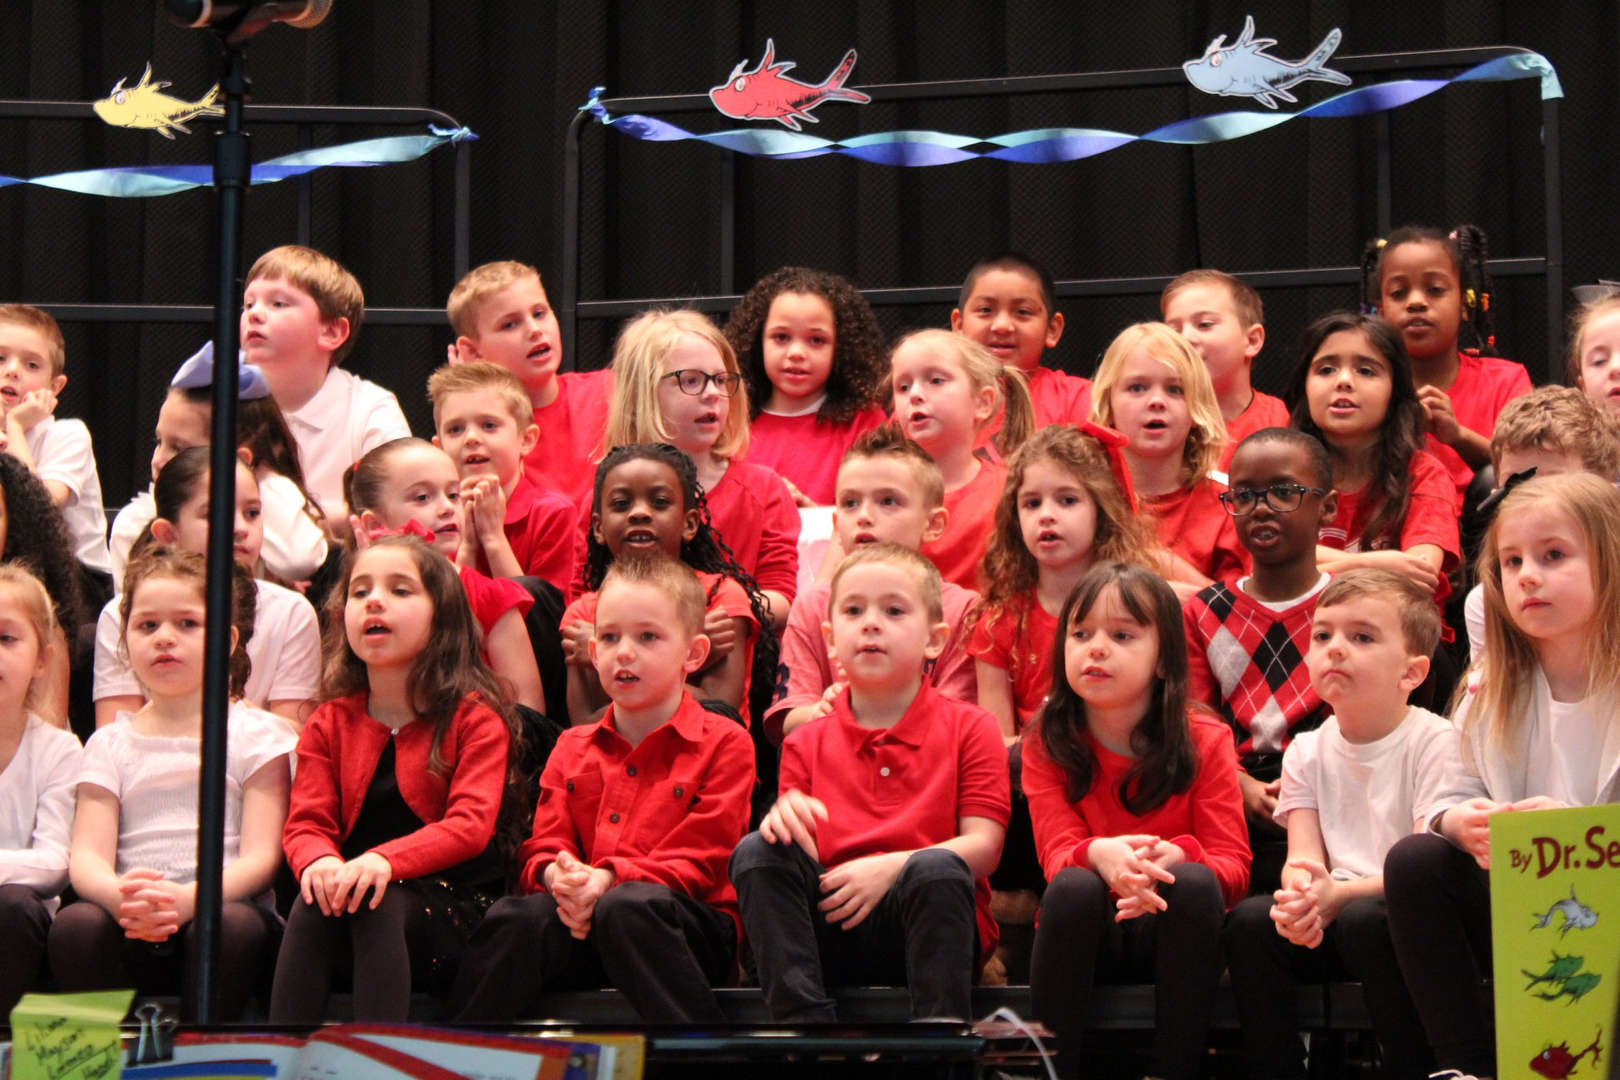 CBW students perform in an assembly.